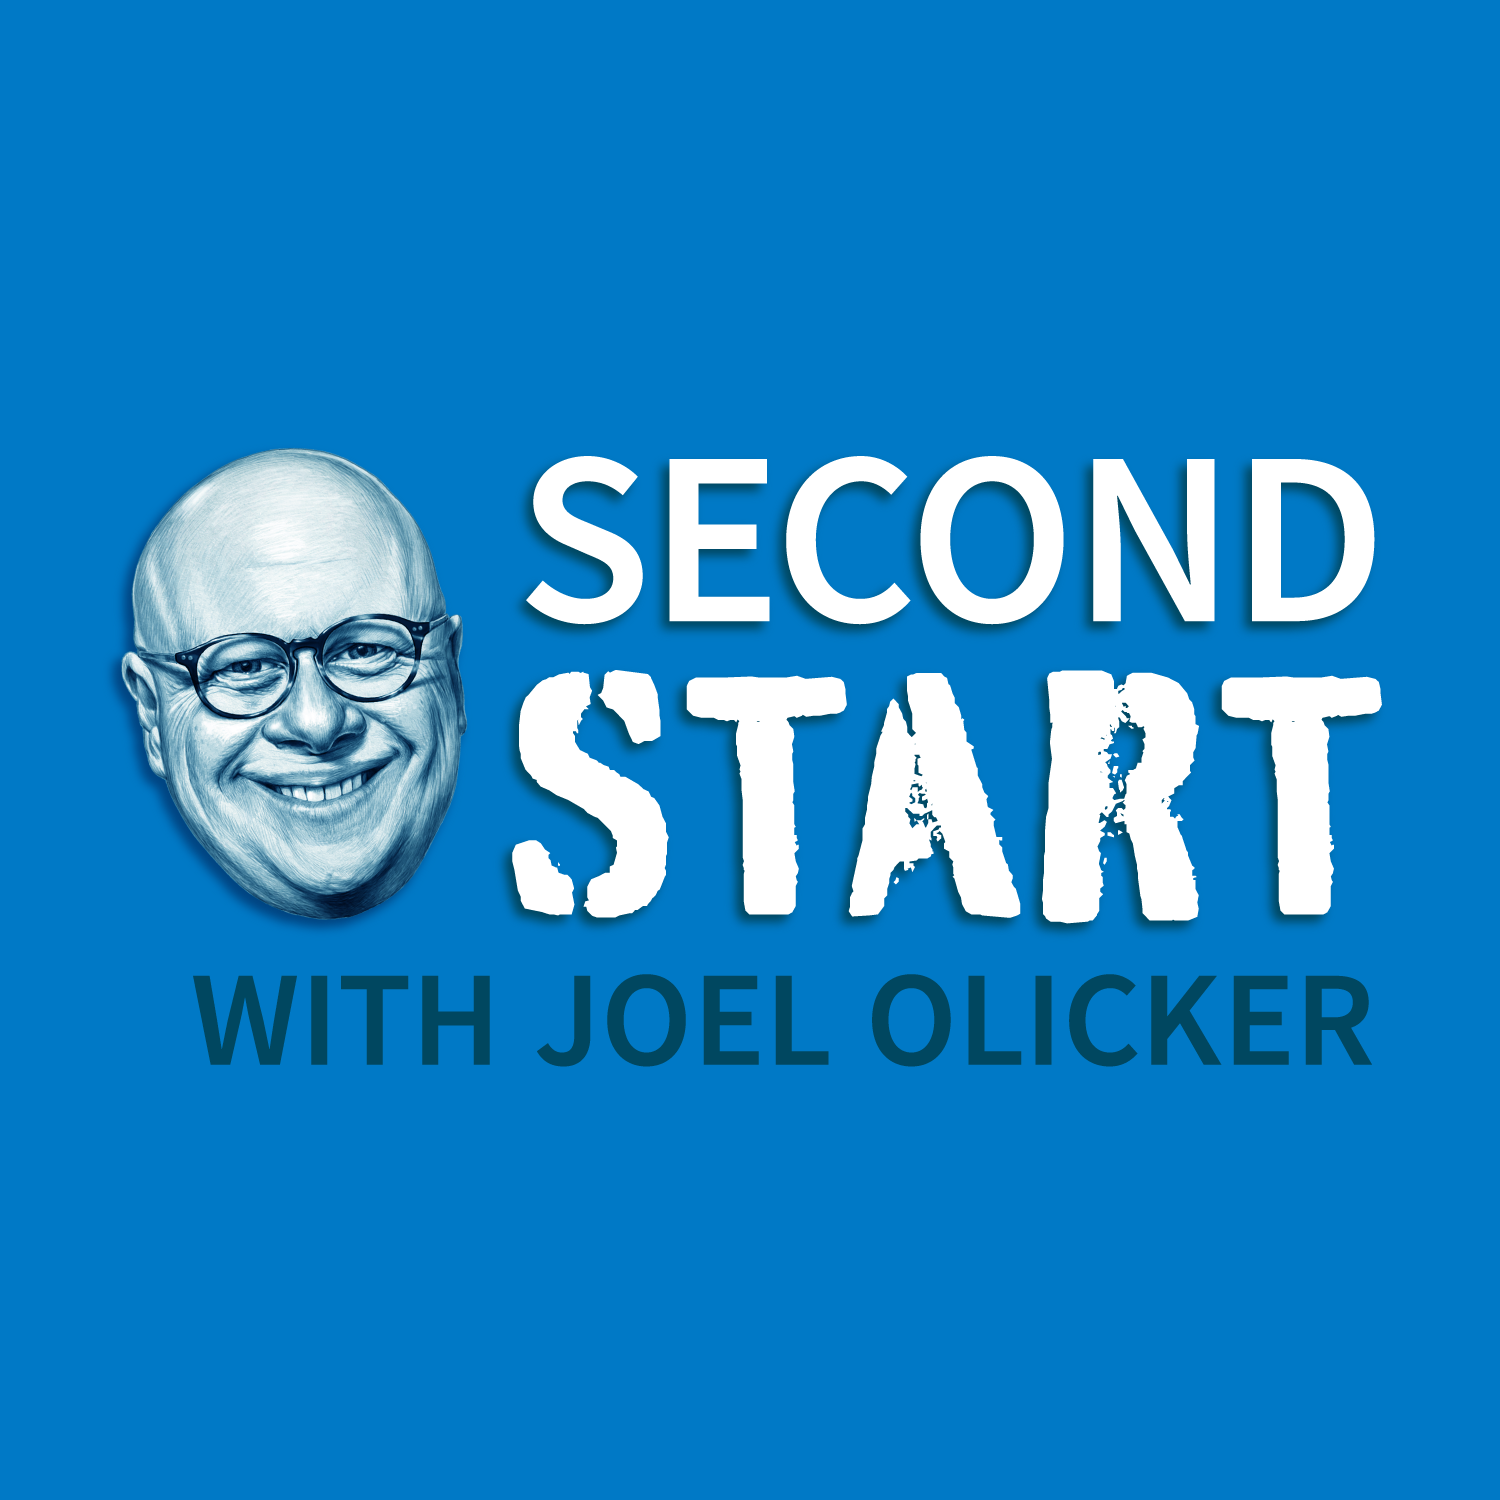 Second Start with Joel Olicker